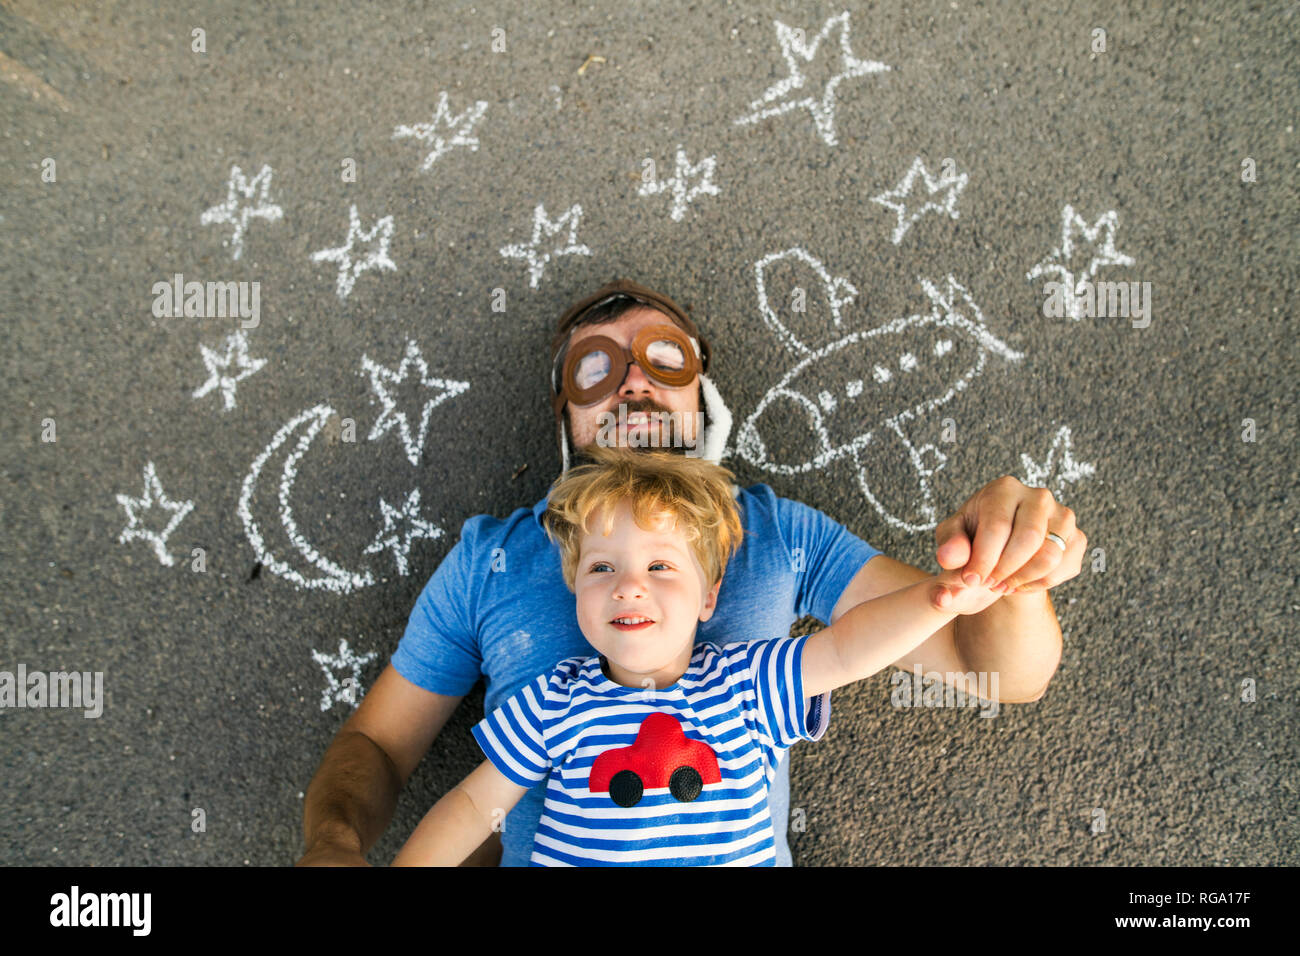 Portrait of mature man wearing pilot hat and his little son lying on asphalt painted with airplane, moon and stars - Stock Image